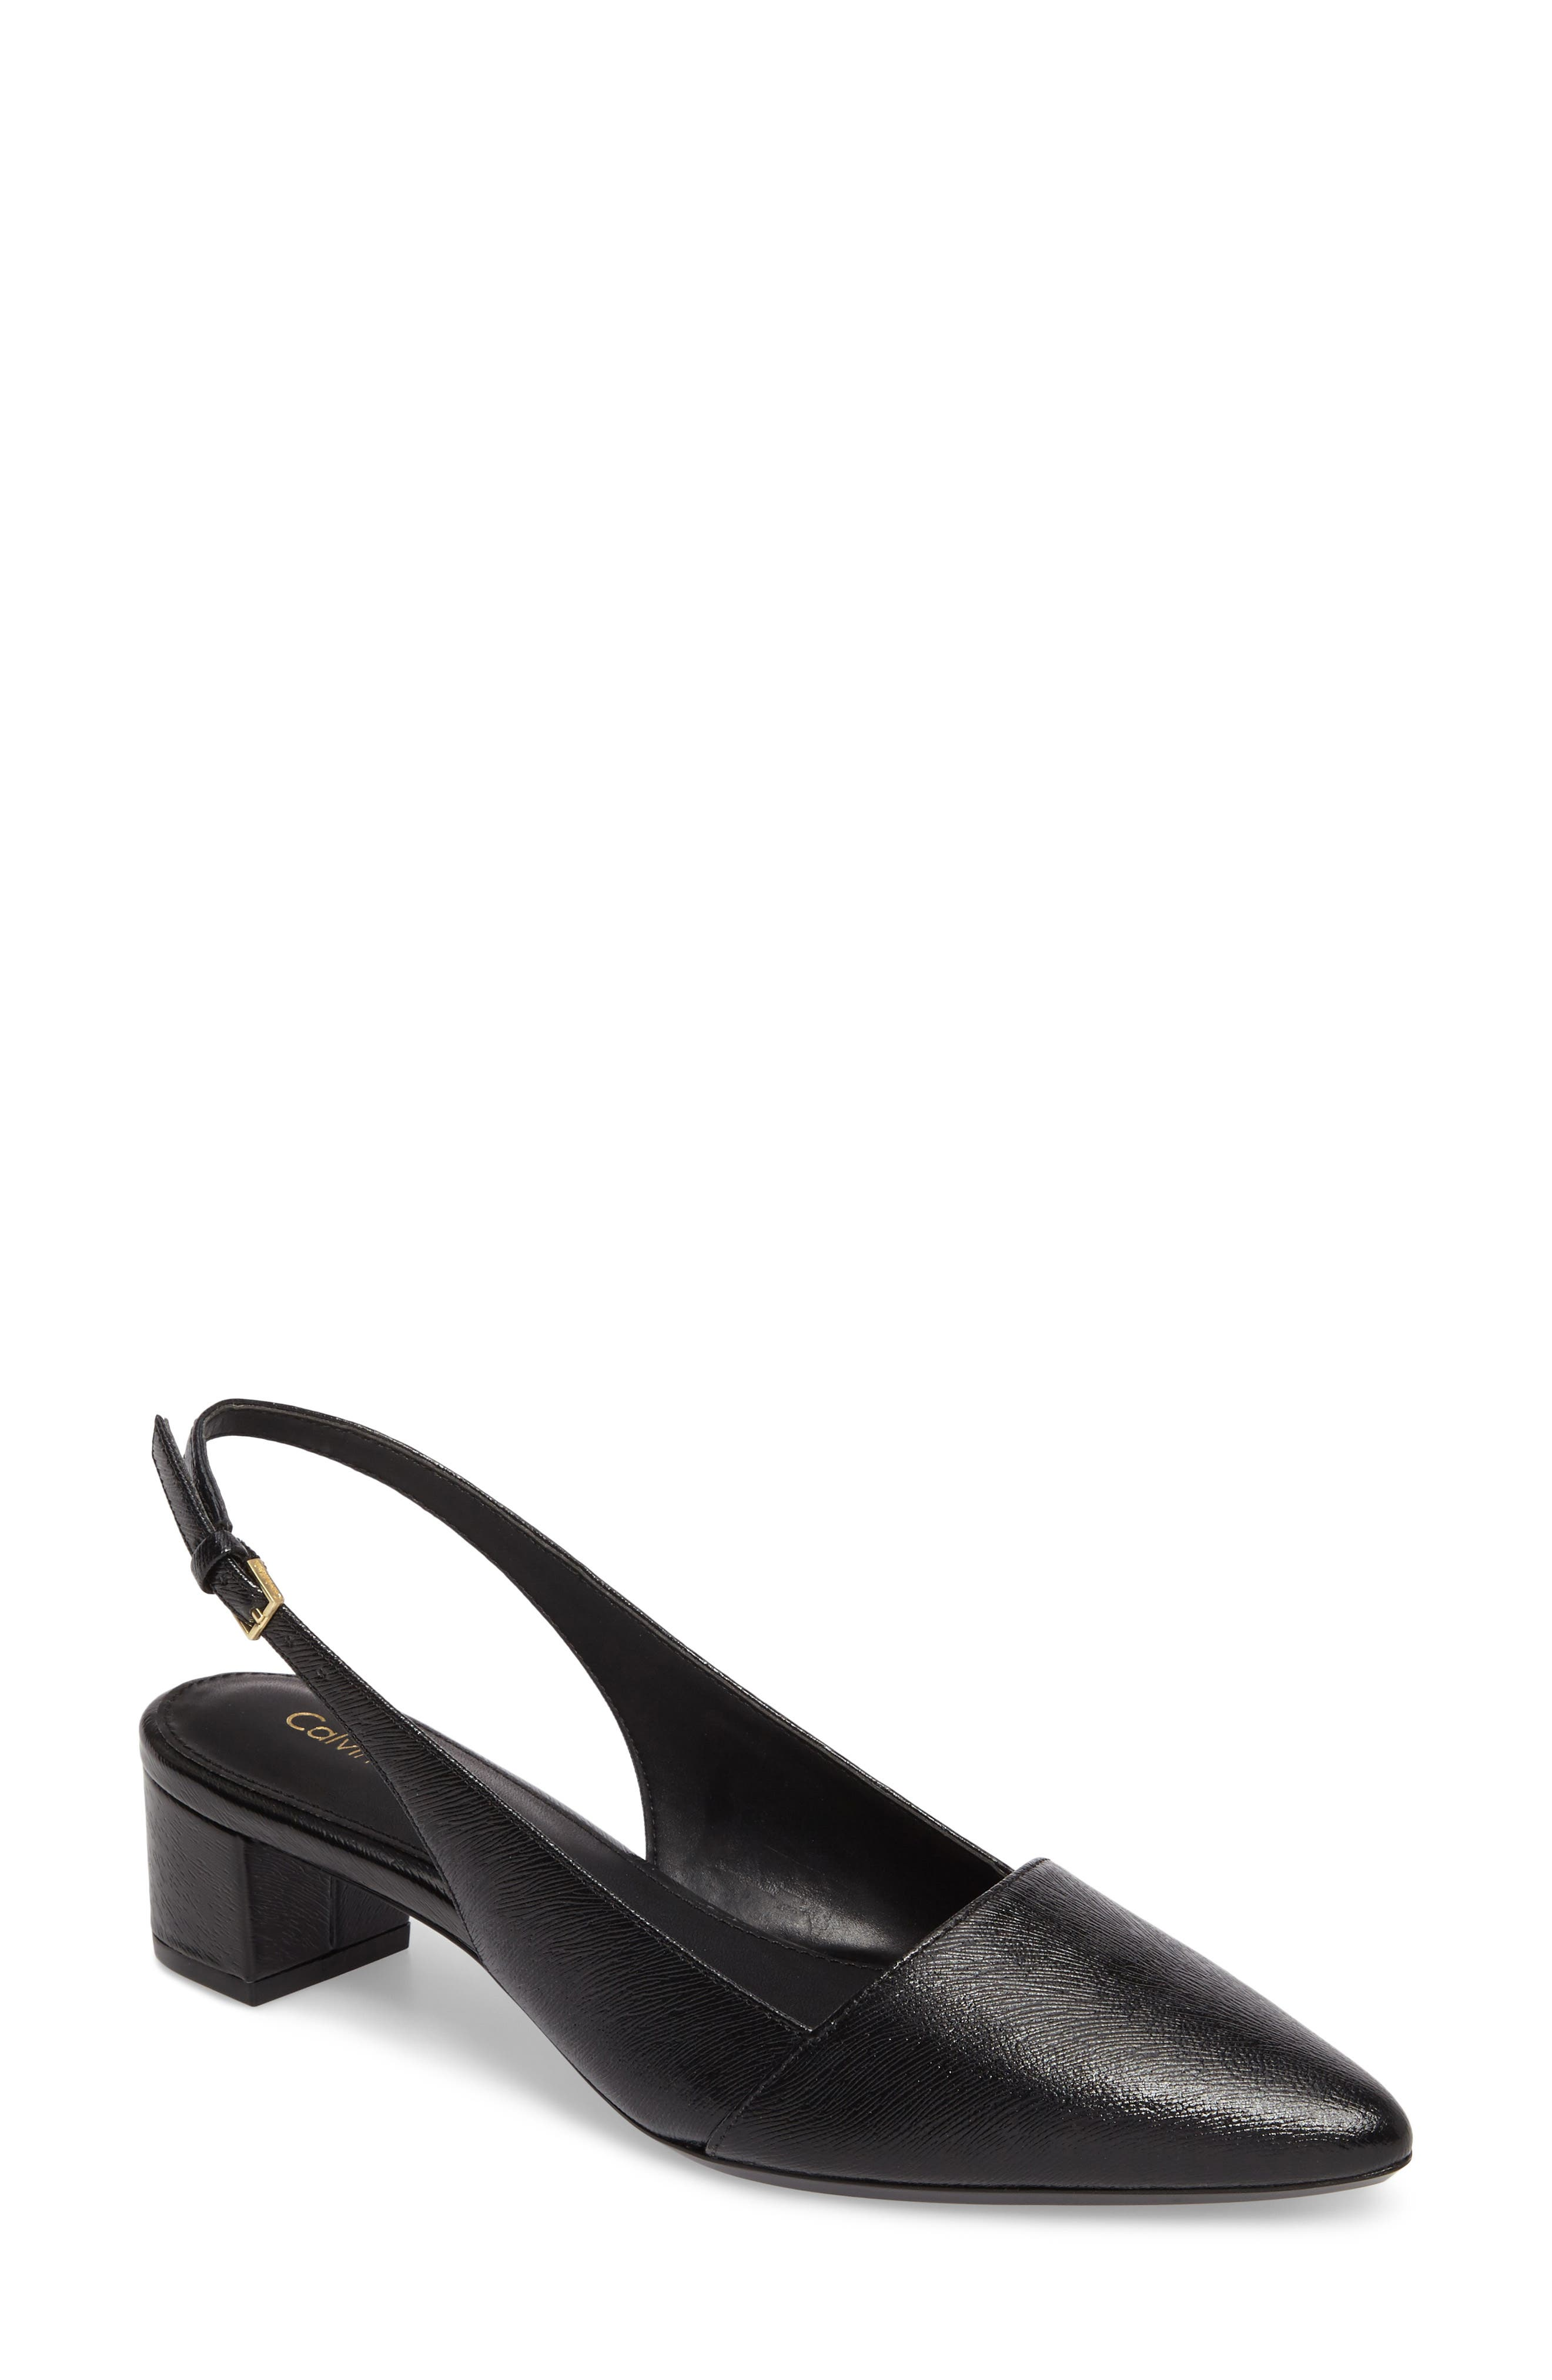 Galinda Slingback Pump,                             Main thumbnail 1, color,                             BLACK LEATHER